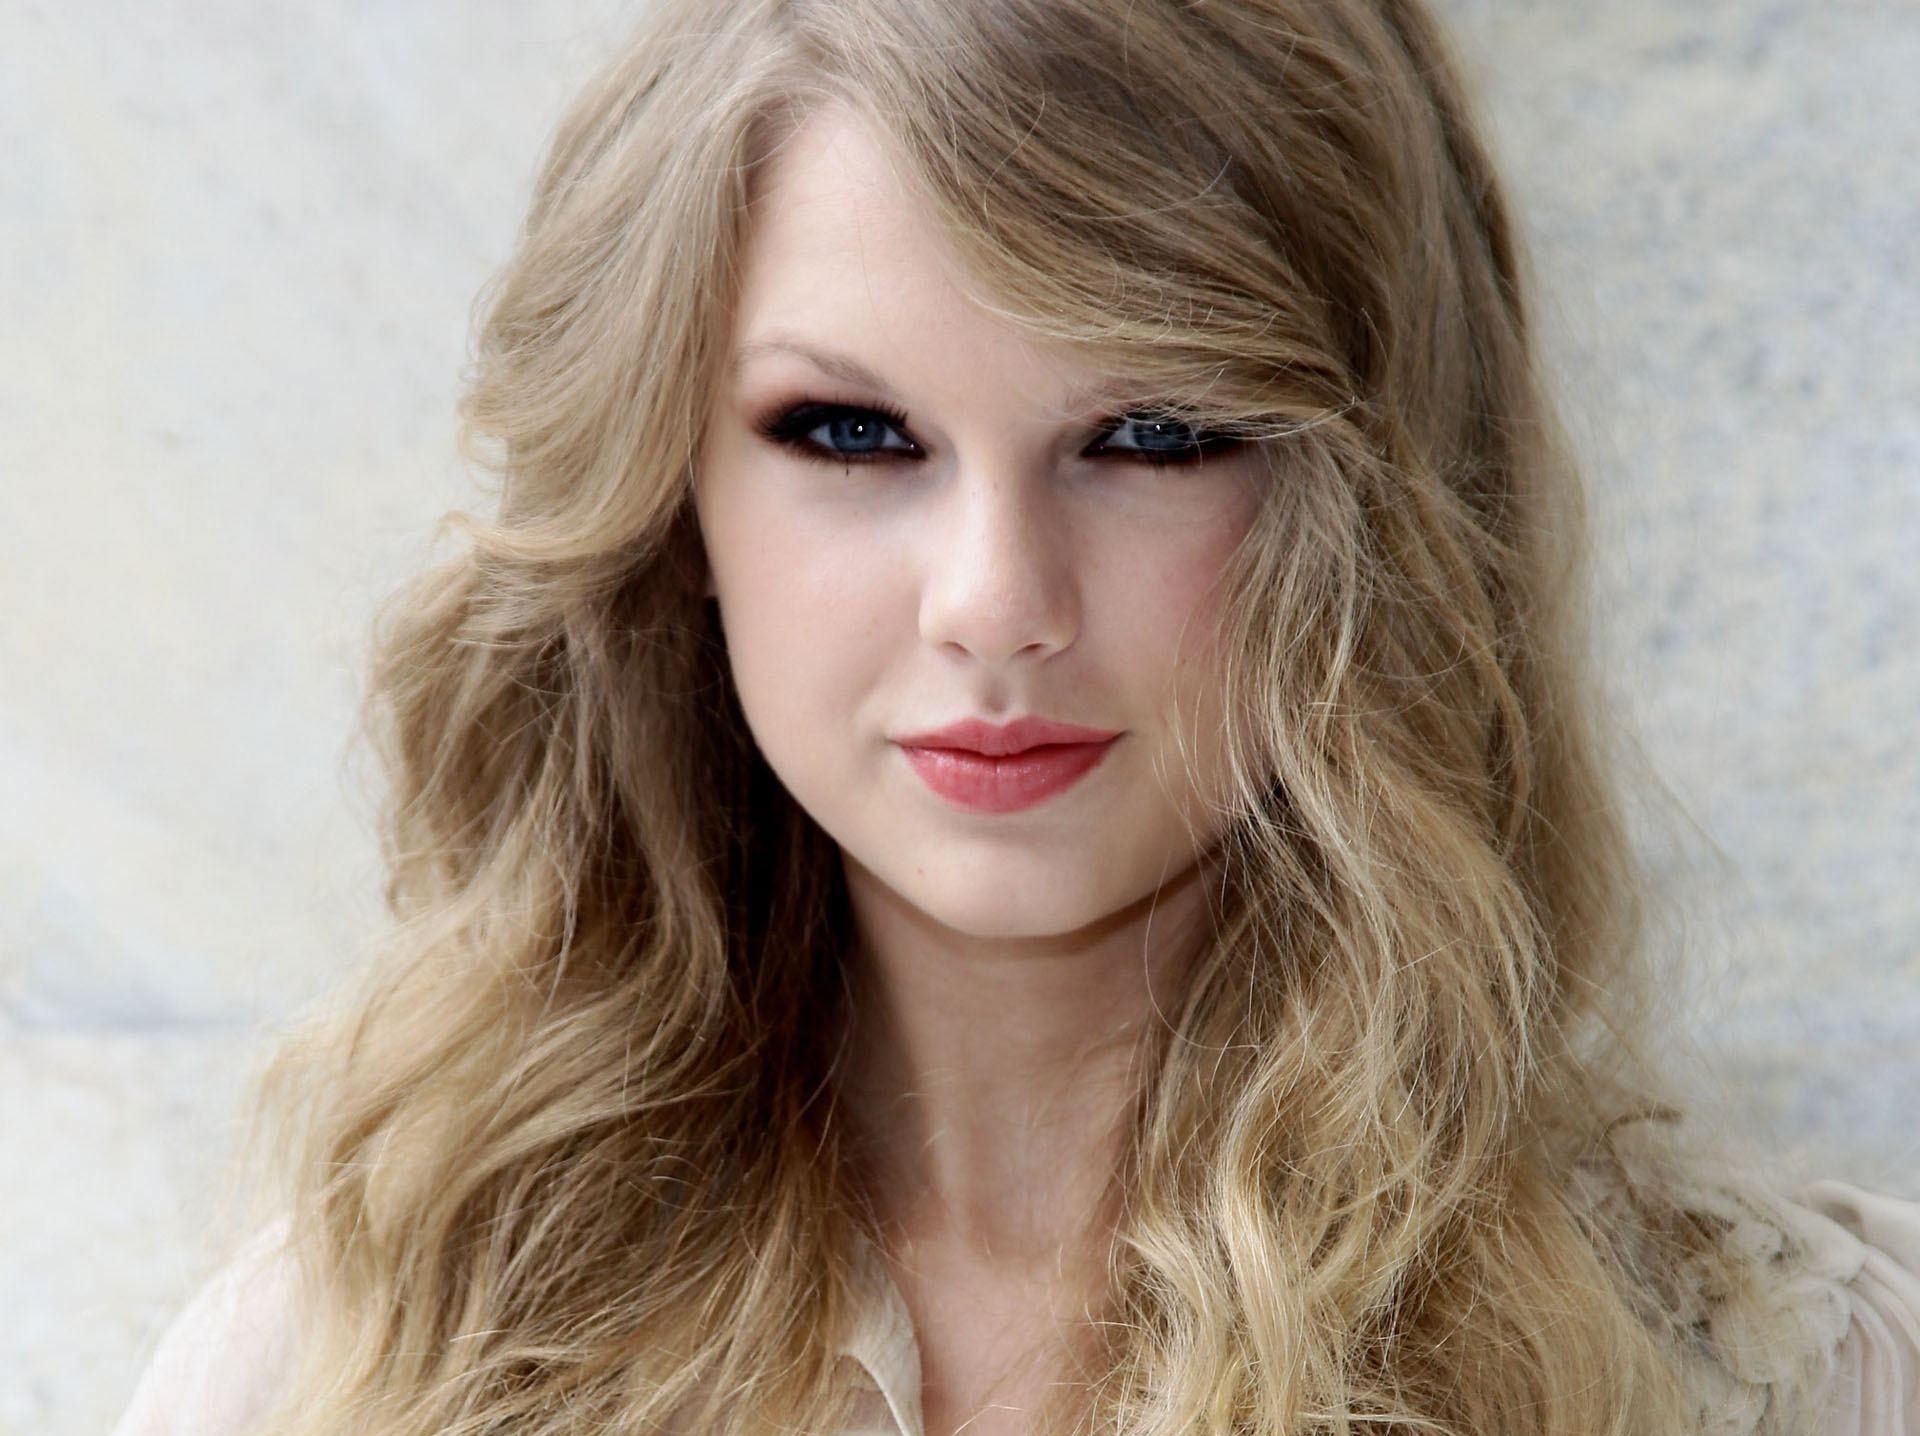 Taylor Swift Killer Smile Lips and Doll Look